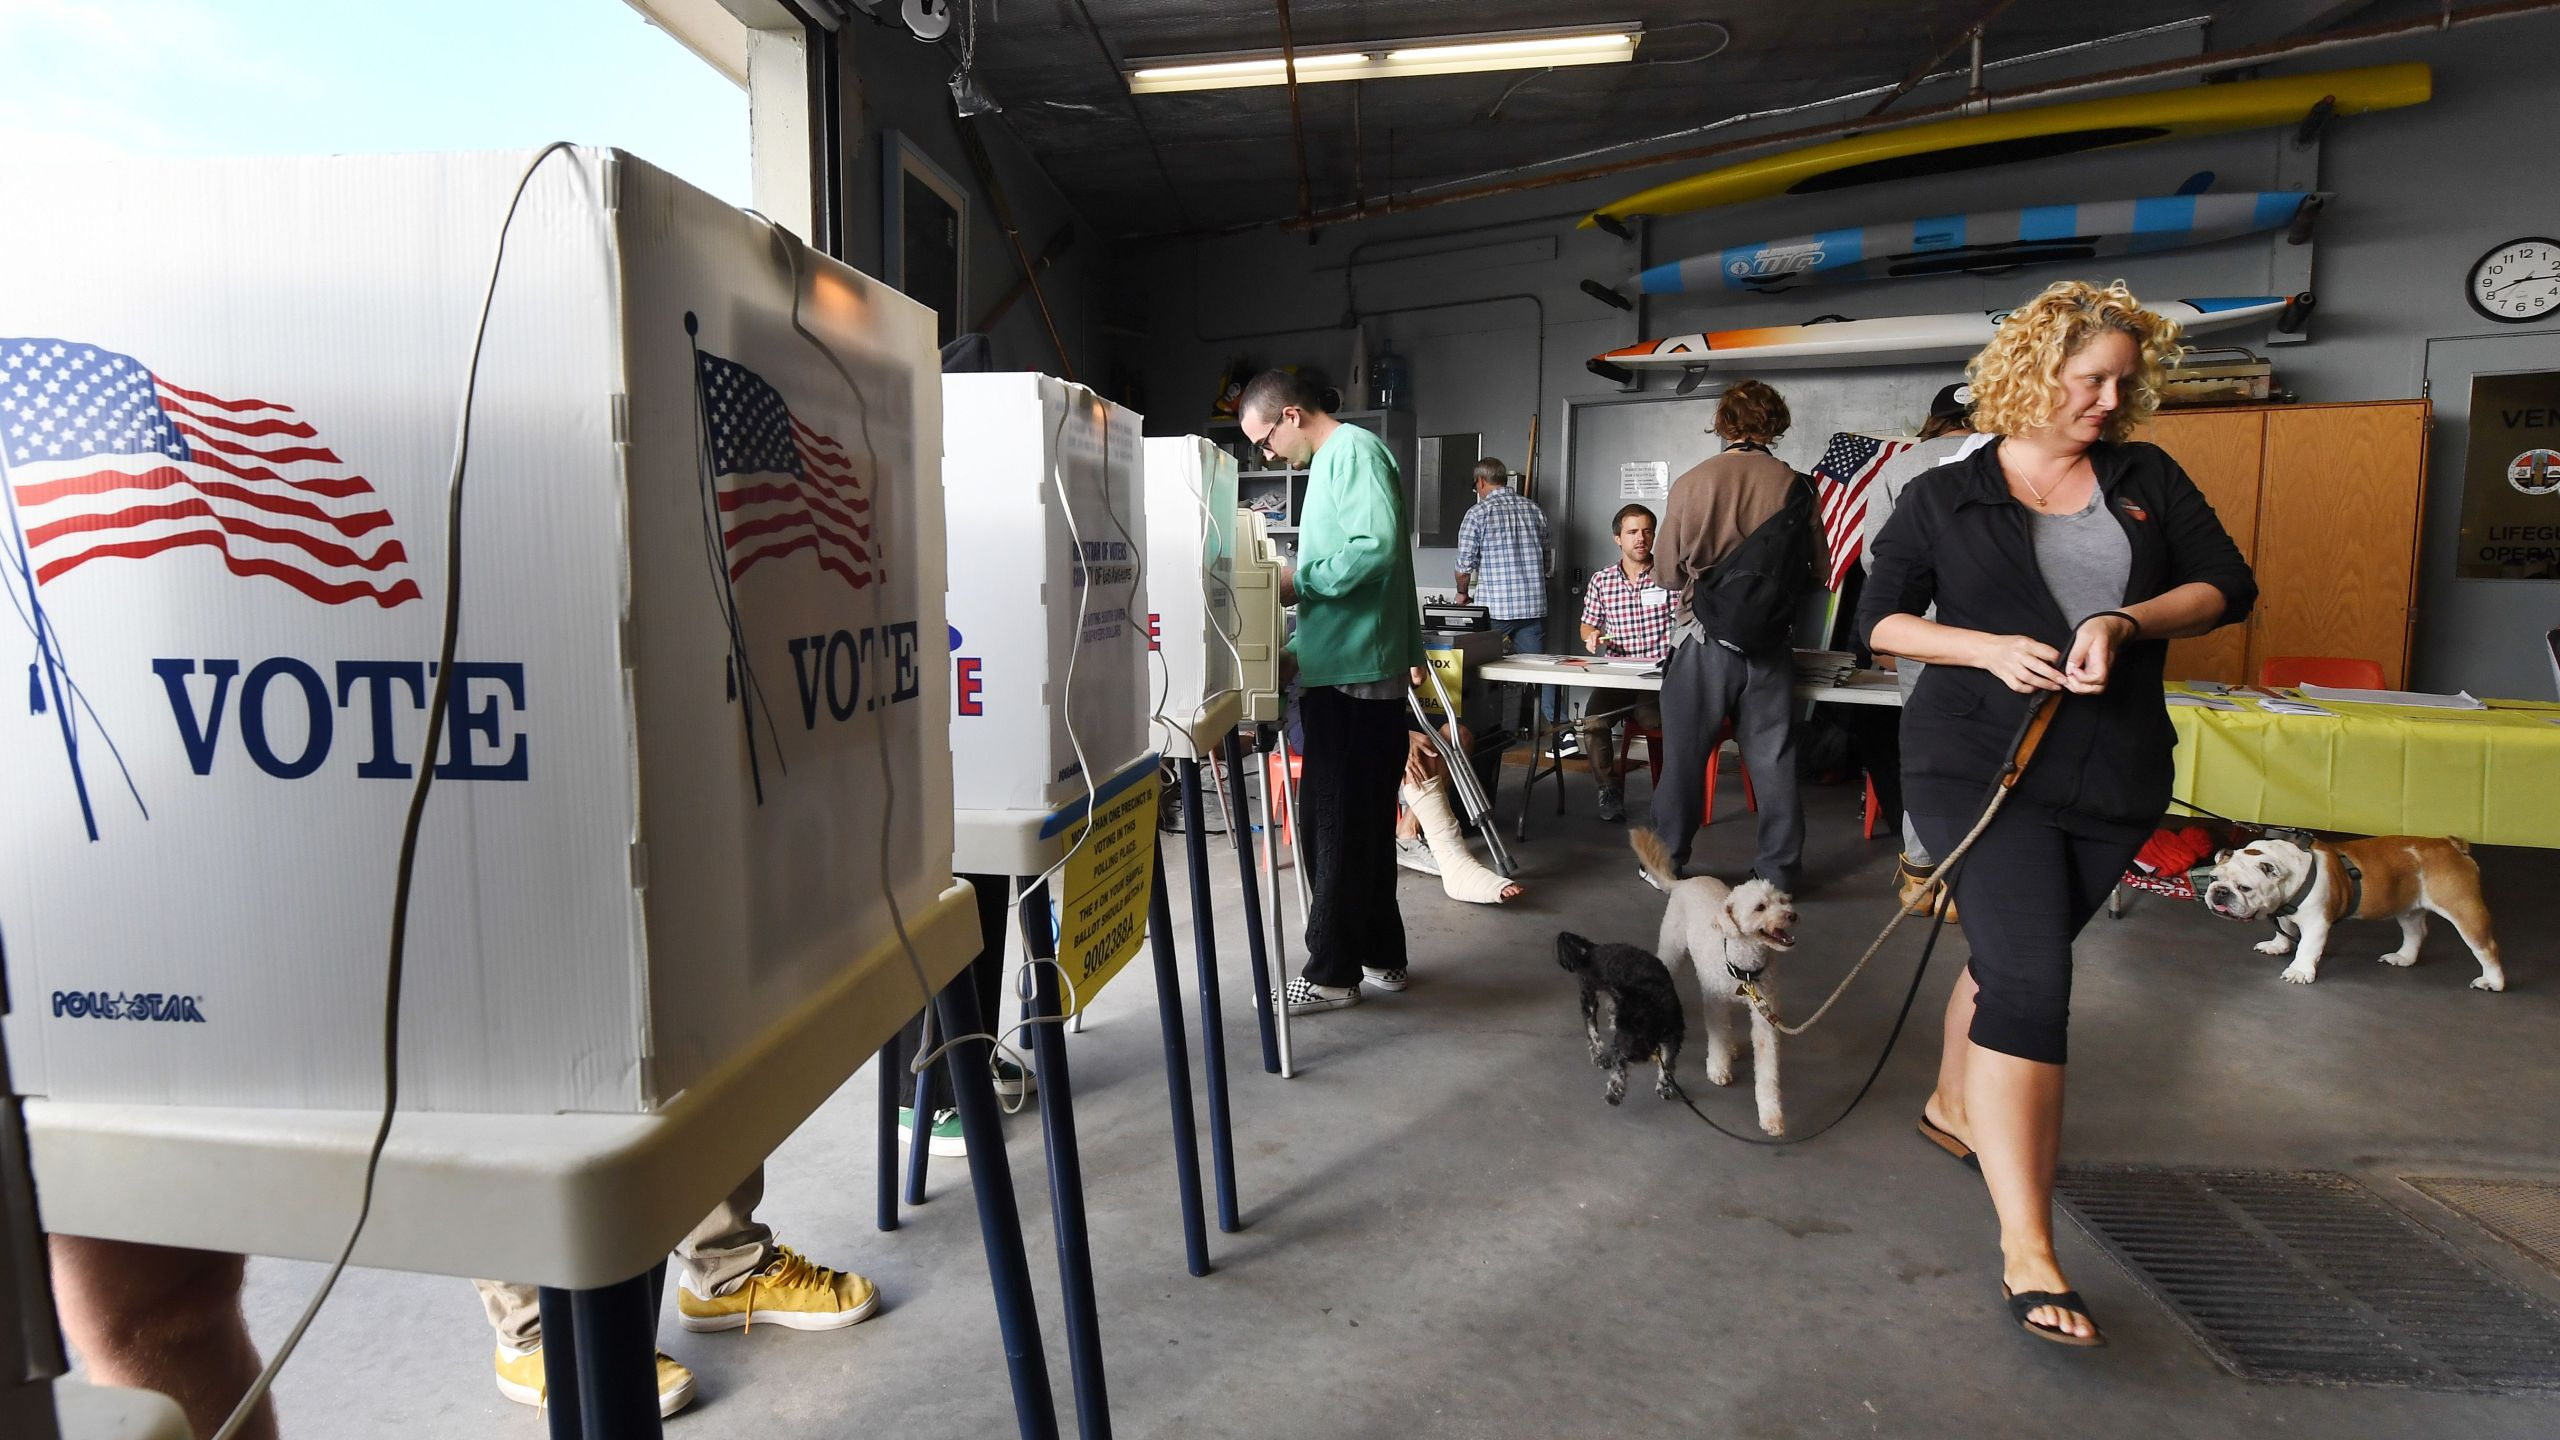 People vote during the midterm elections beside the beach at the Venice Beach Lifeguard station on Nov. 6, 2018. (Credit: MARK RALSTON/AFP/Getty Images)